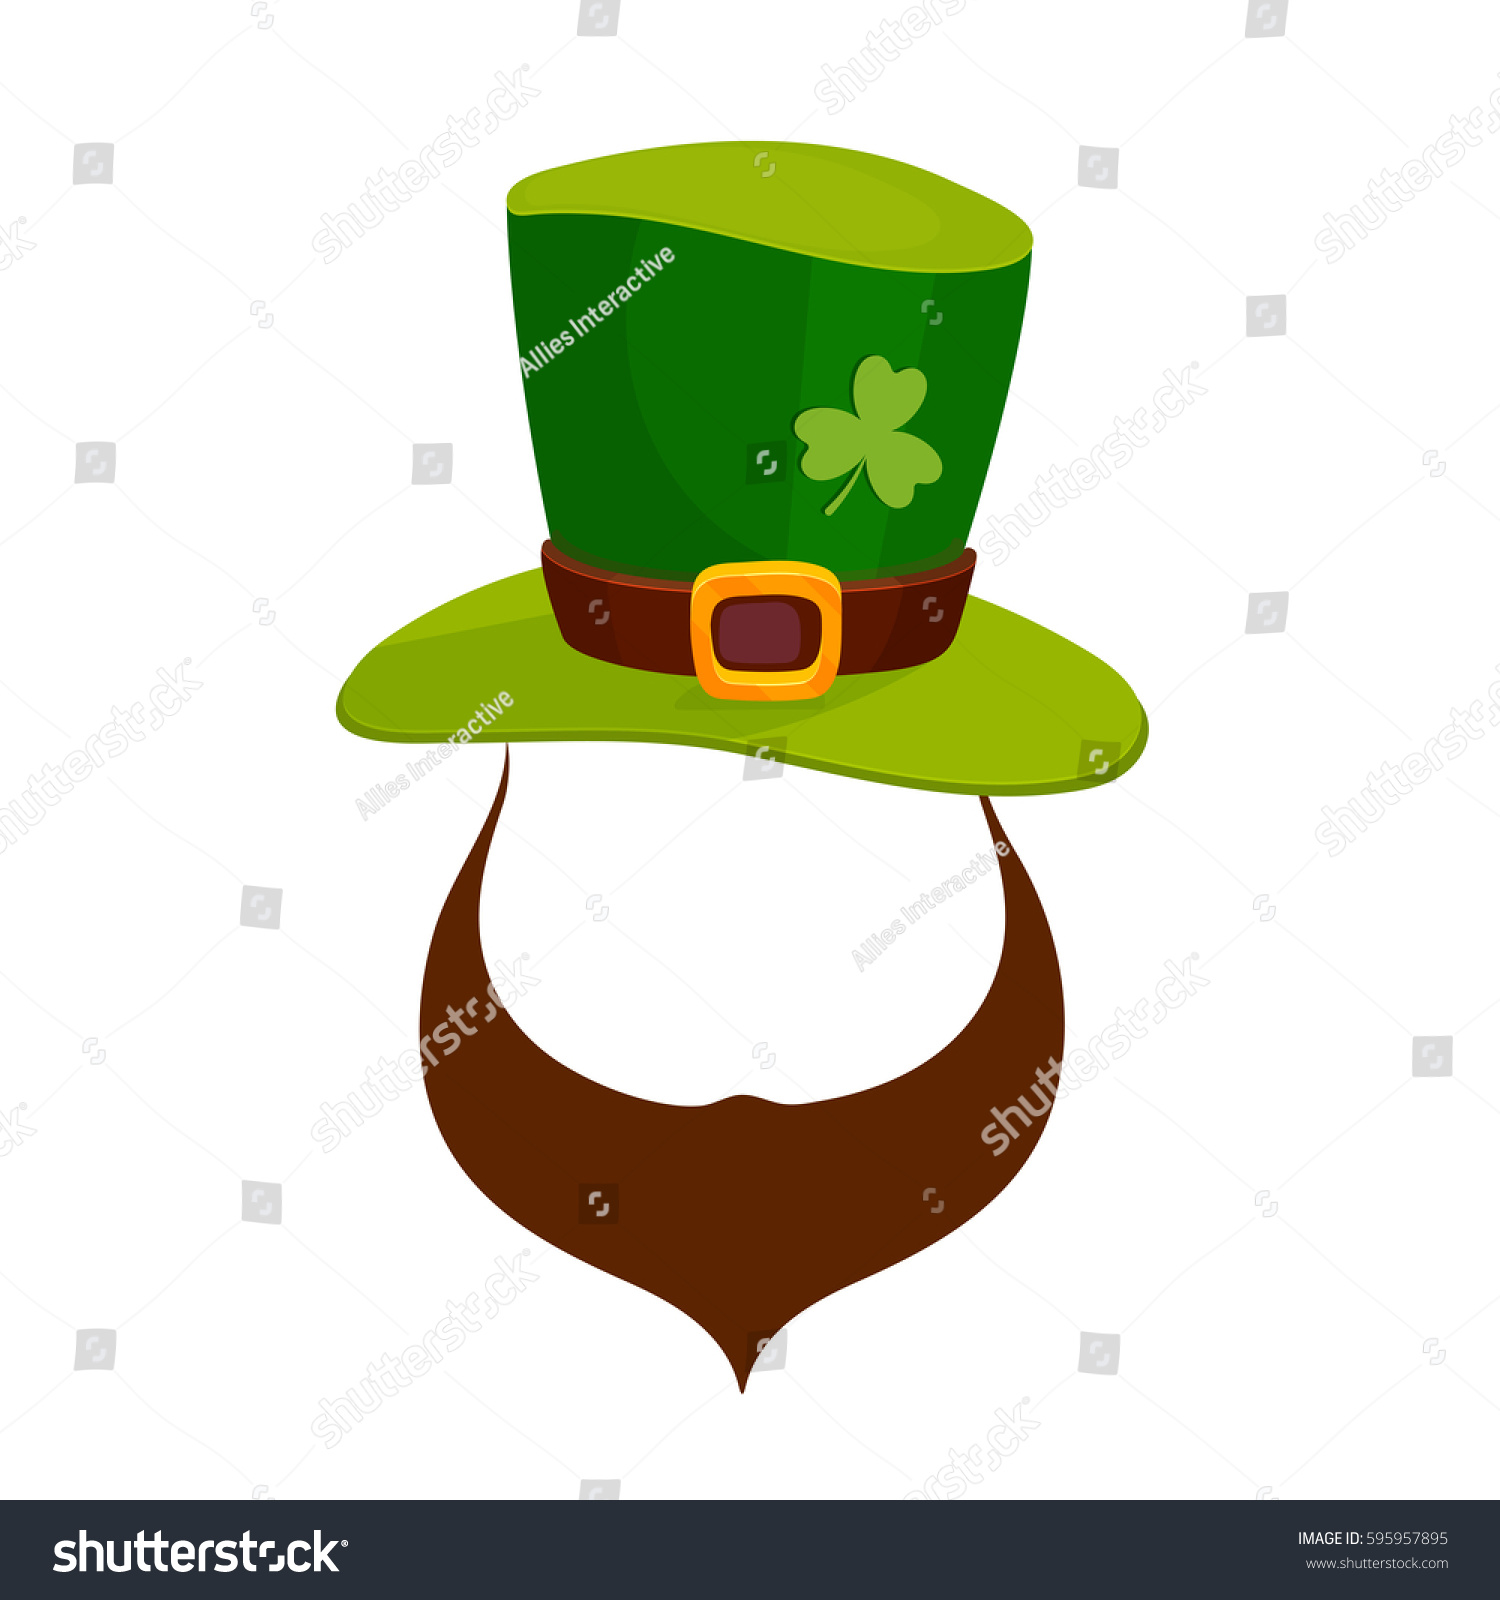 Leprechaun face beard green hat happy stock vector for Leprechaun mask template